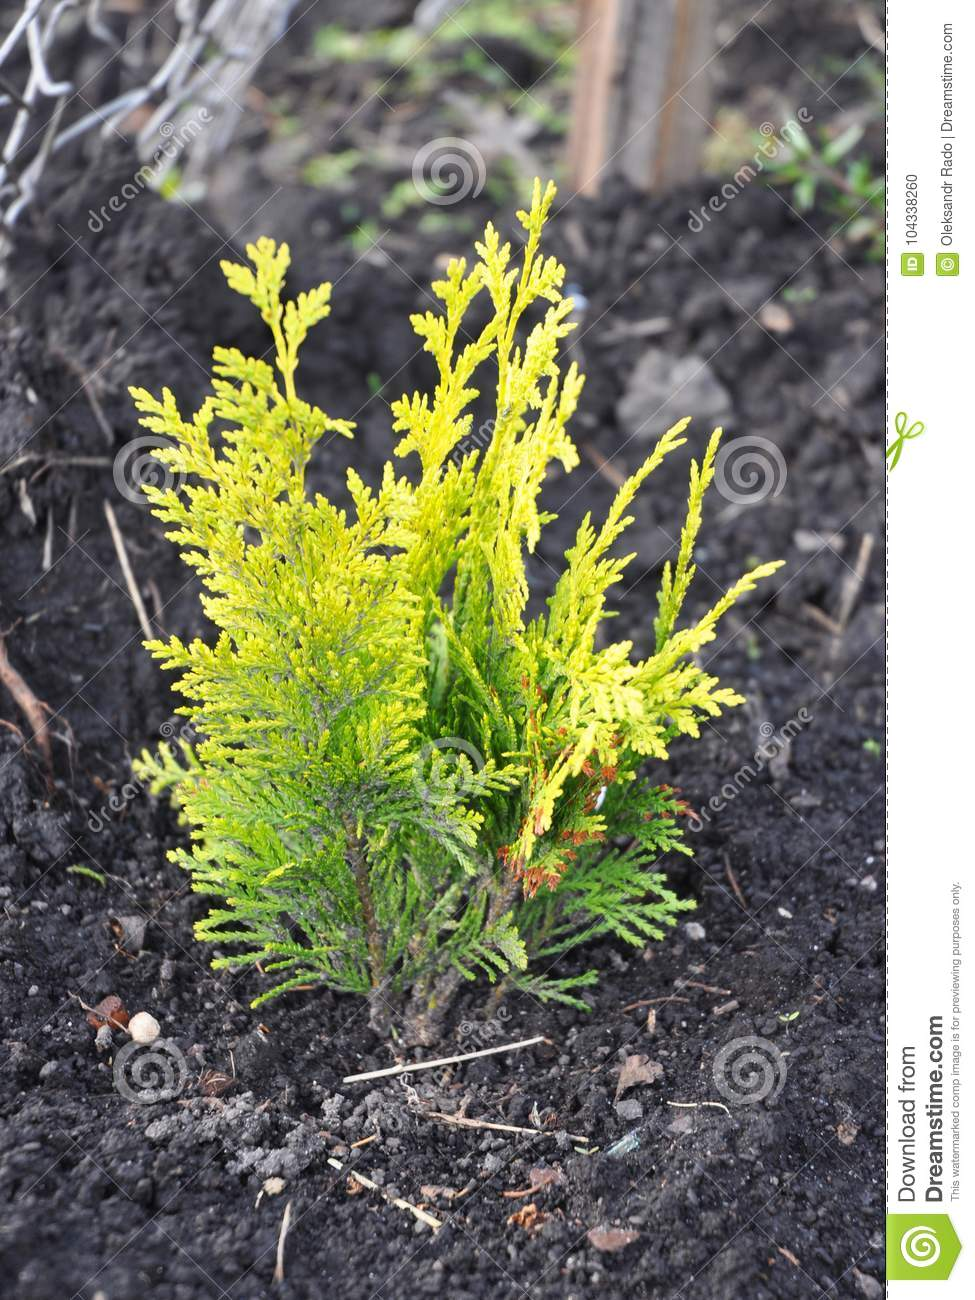 Thuja occidentalis with yellow leaves.Yellow cedar. They are commonly known as arborvitaes, thujas or cedars.